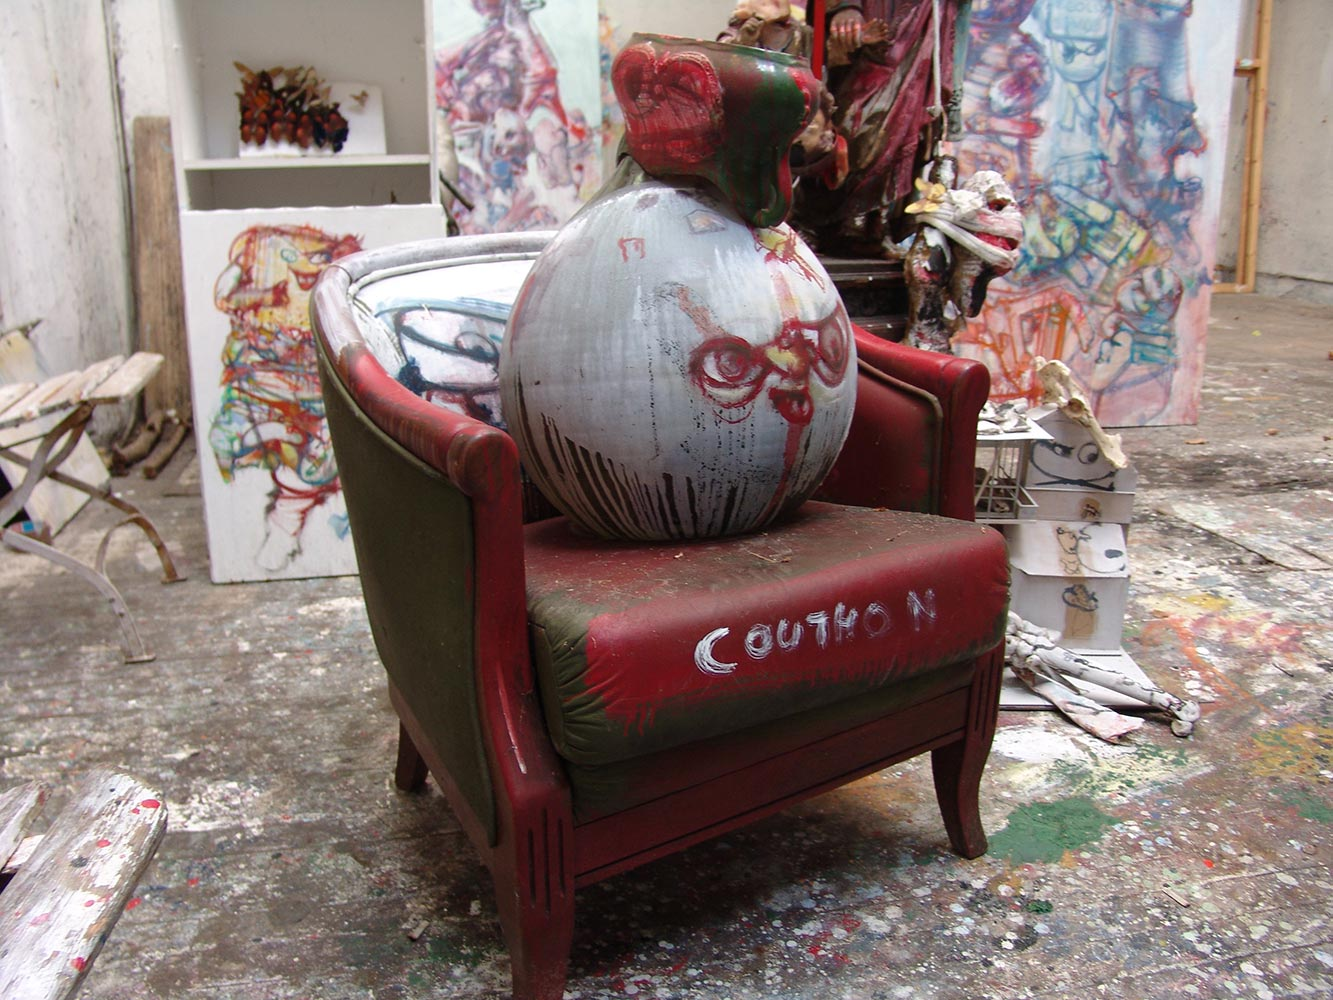 Sculpture at Dado's studio in 2009